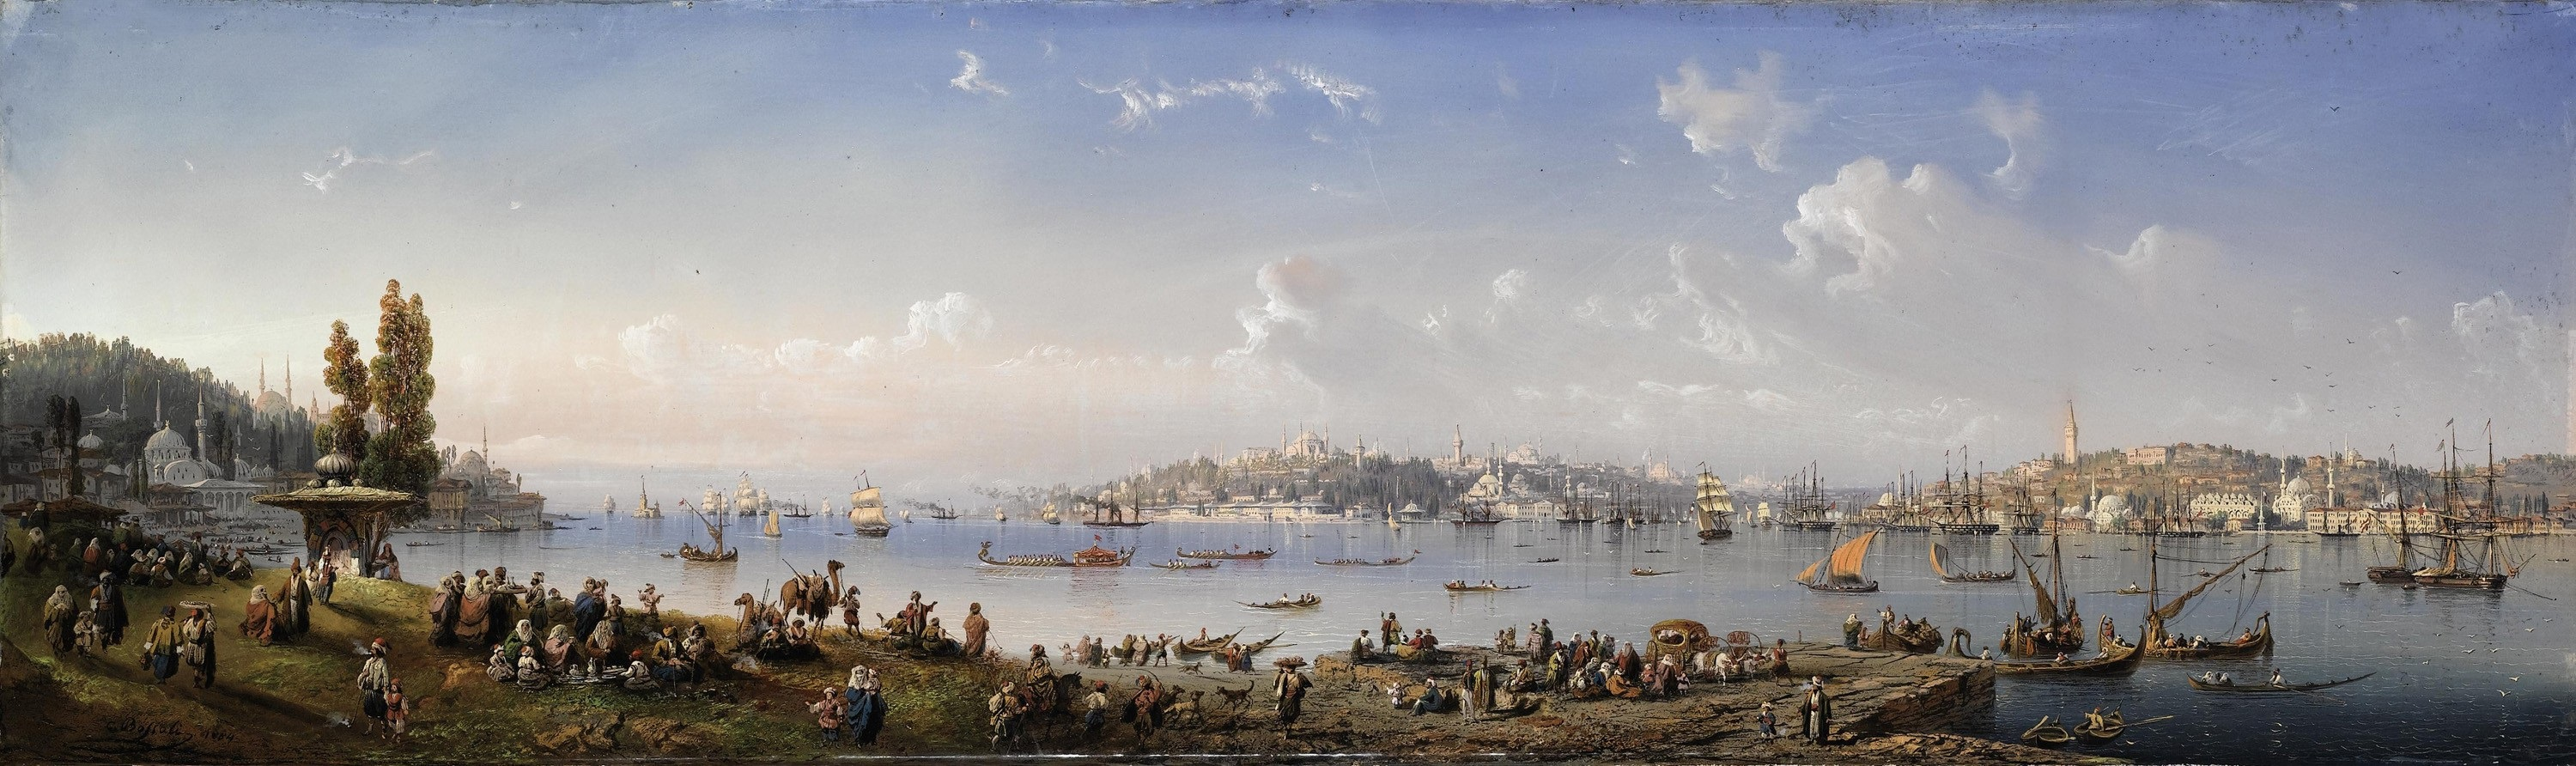 Carlo Bossoli A panorama of Constantinople from Uskudar 1854 1